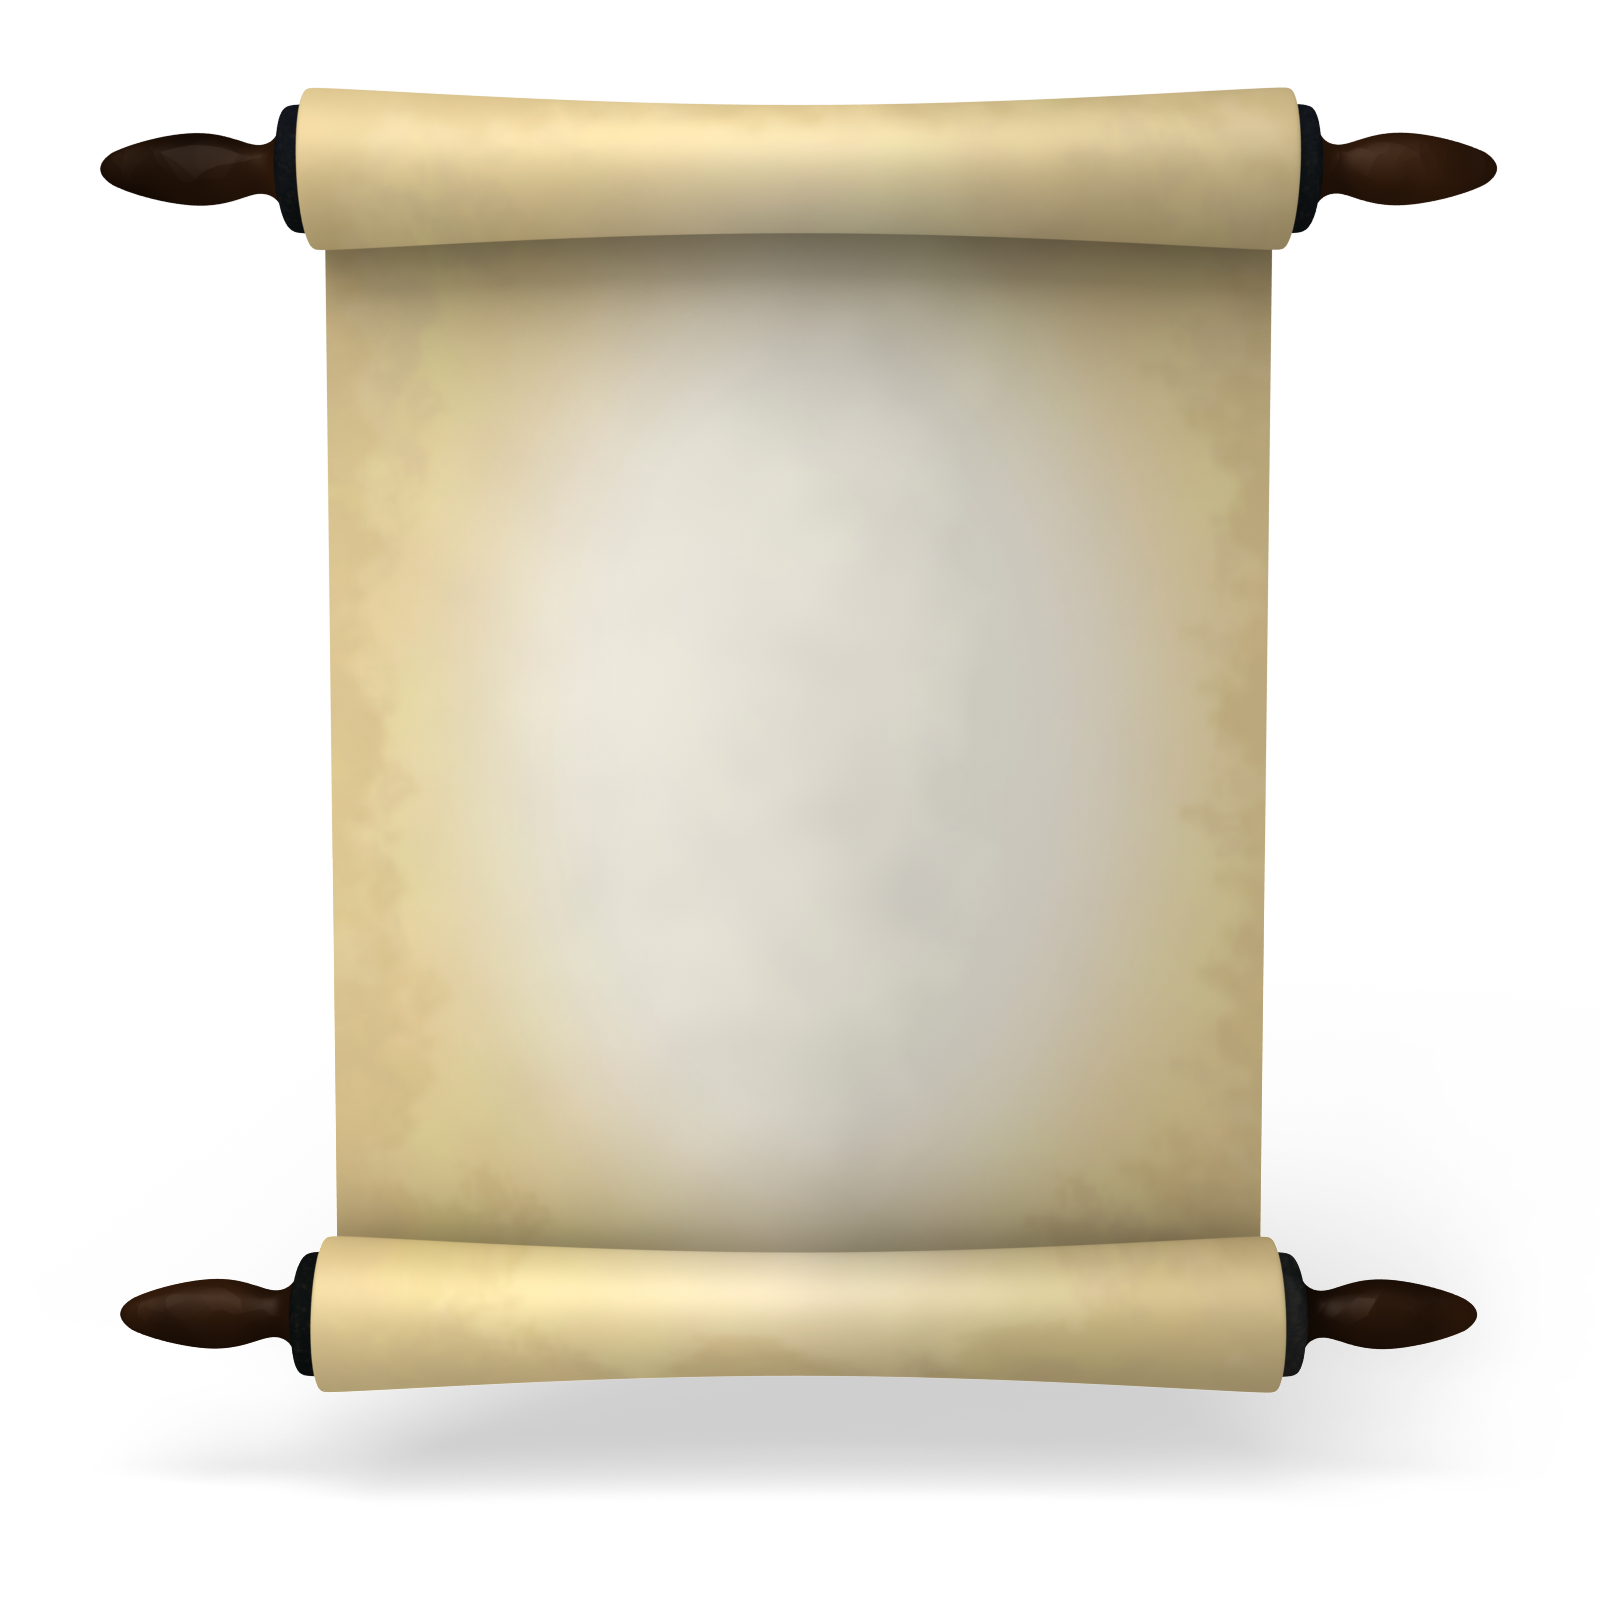 Ancient letter roll png. Paper clipart plus